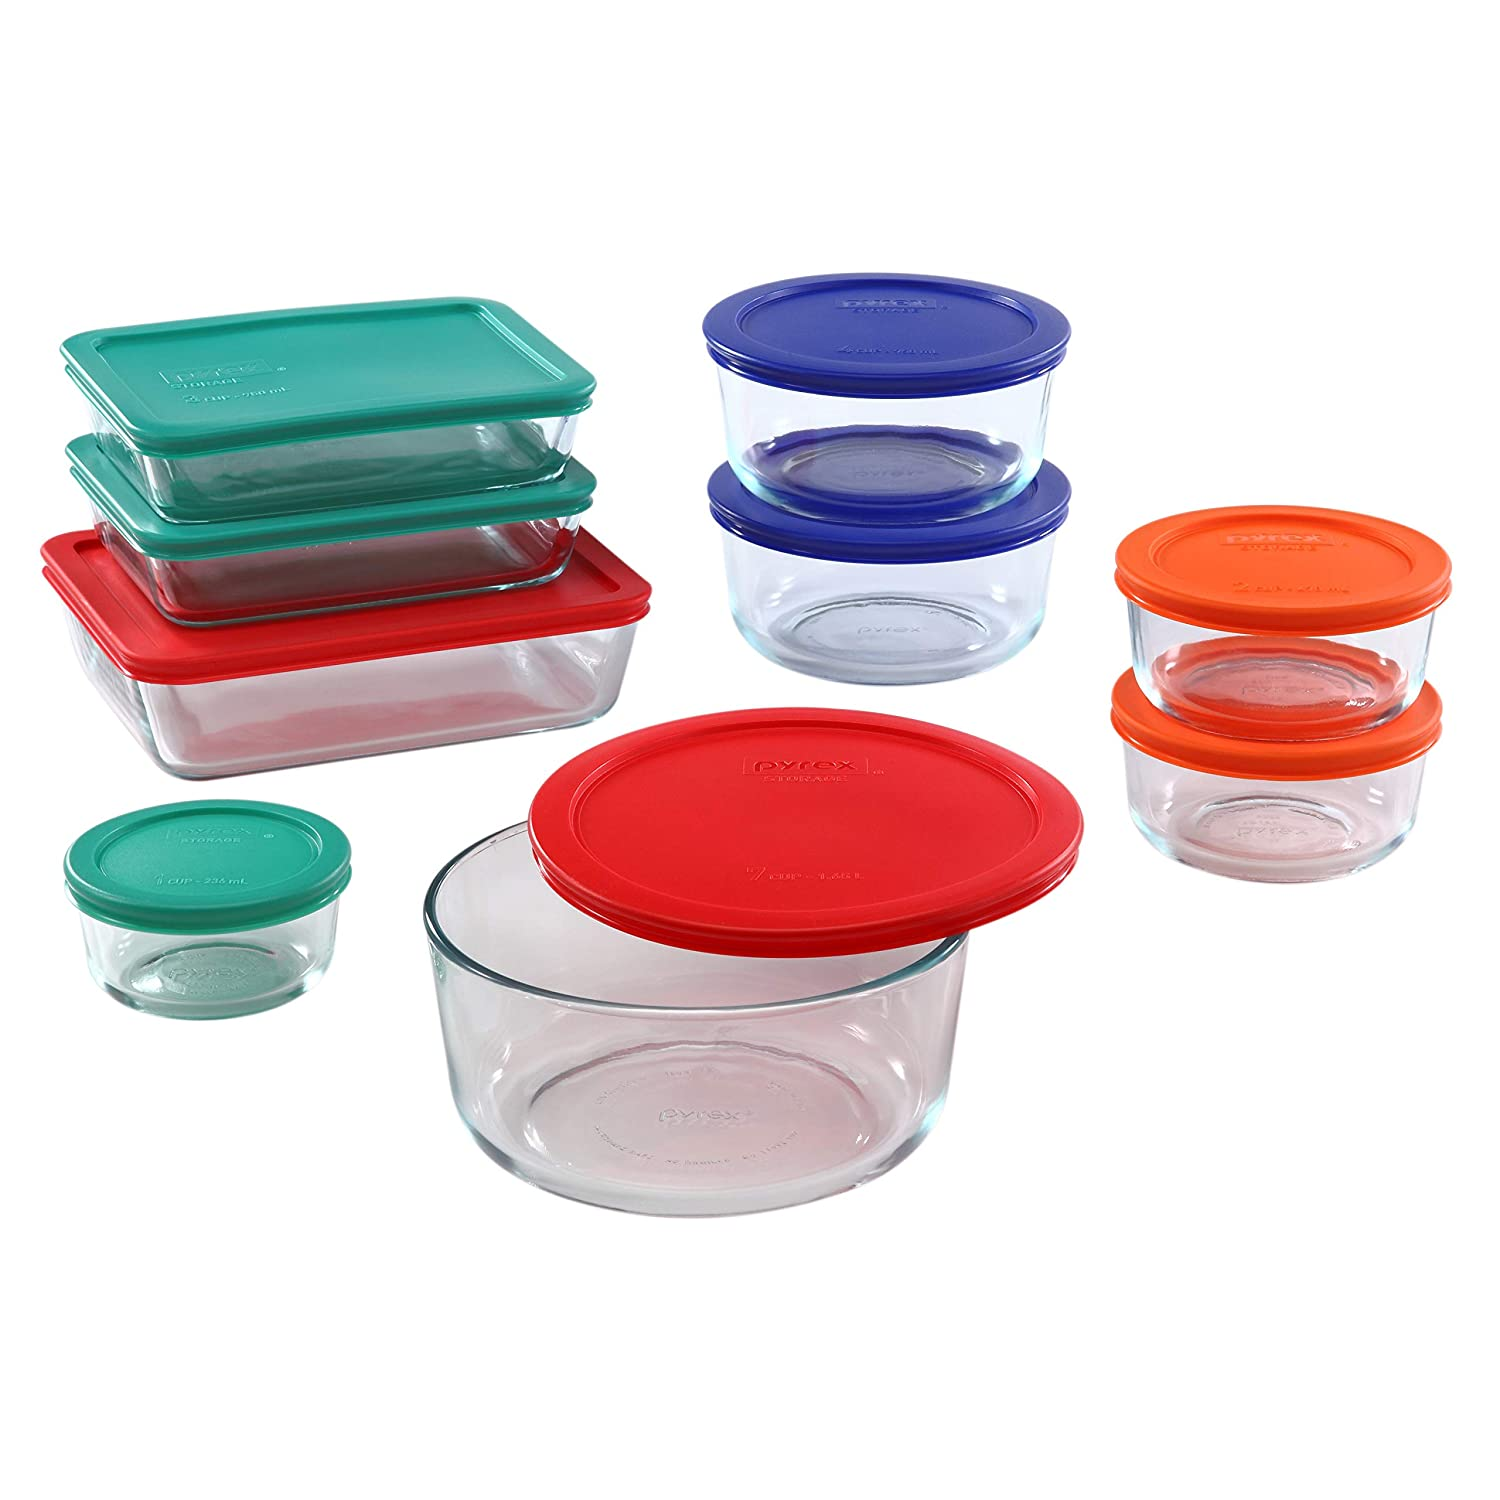 Top 10 Best Pyrex Storage Set